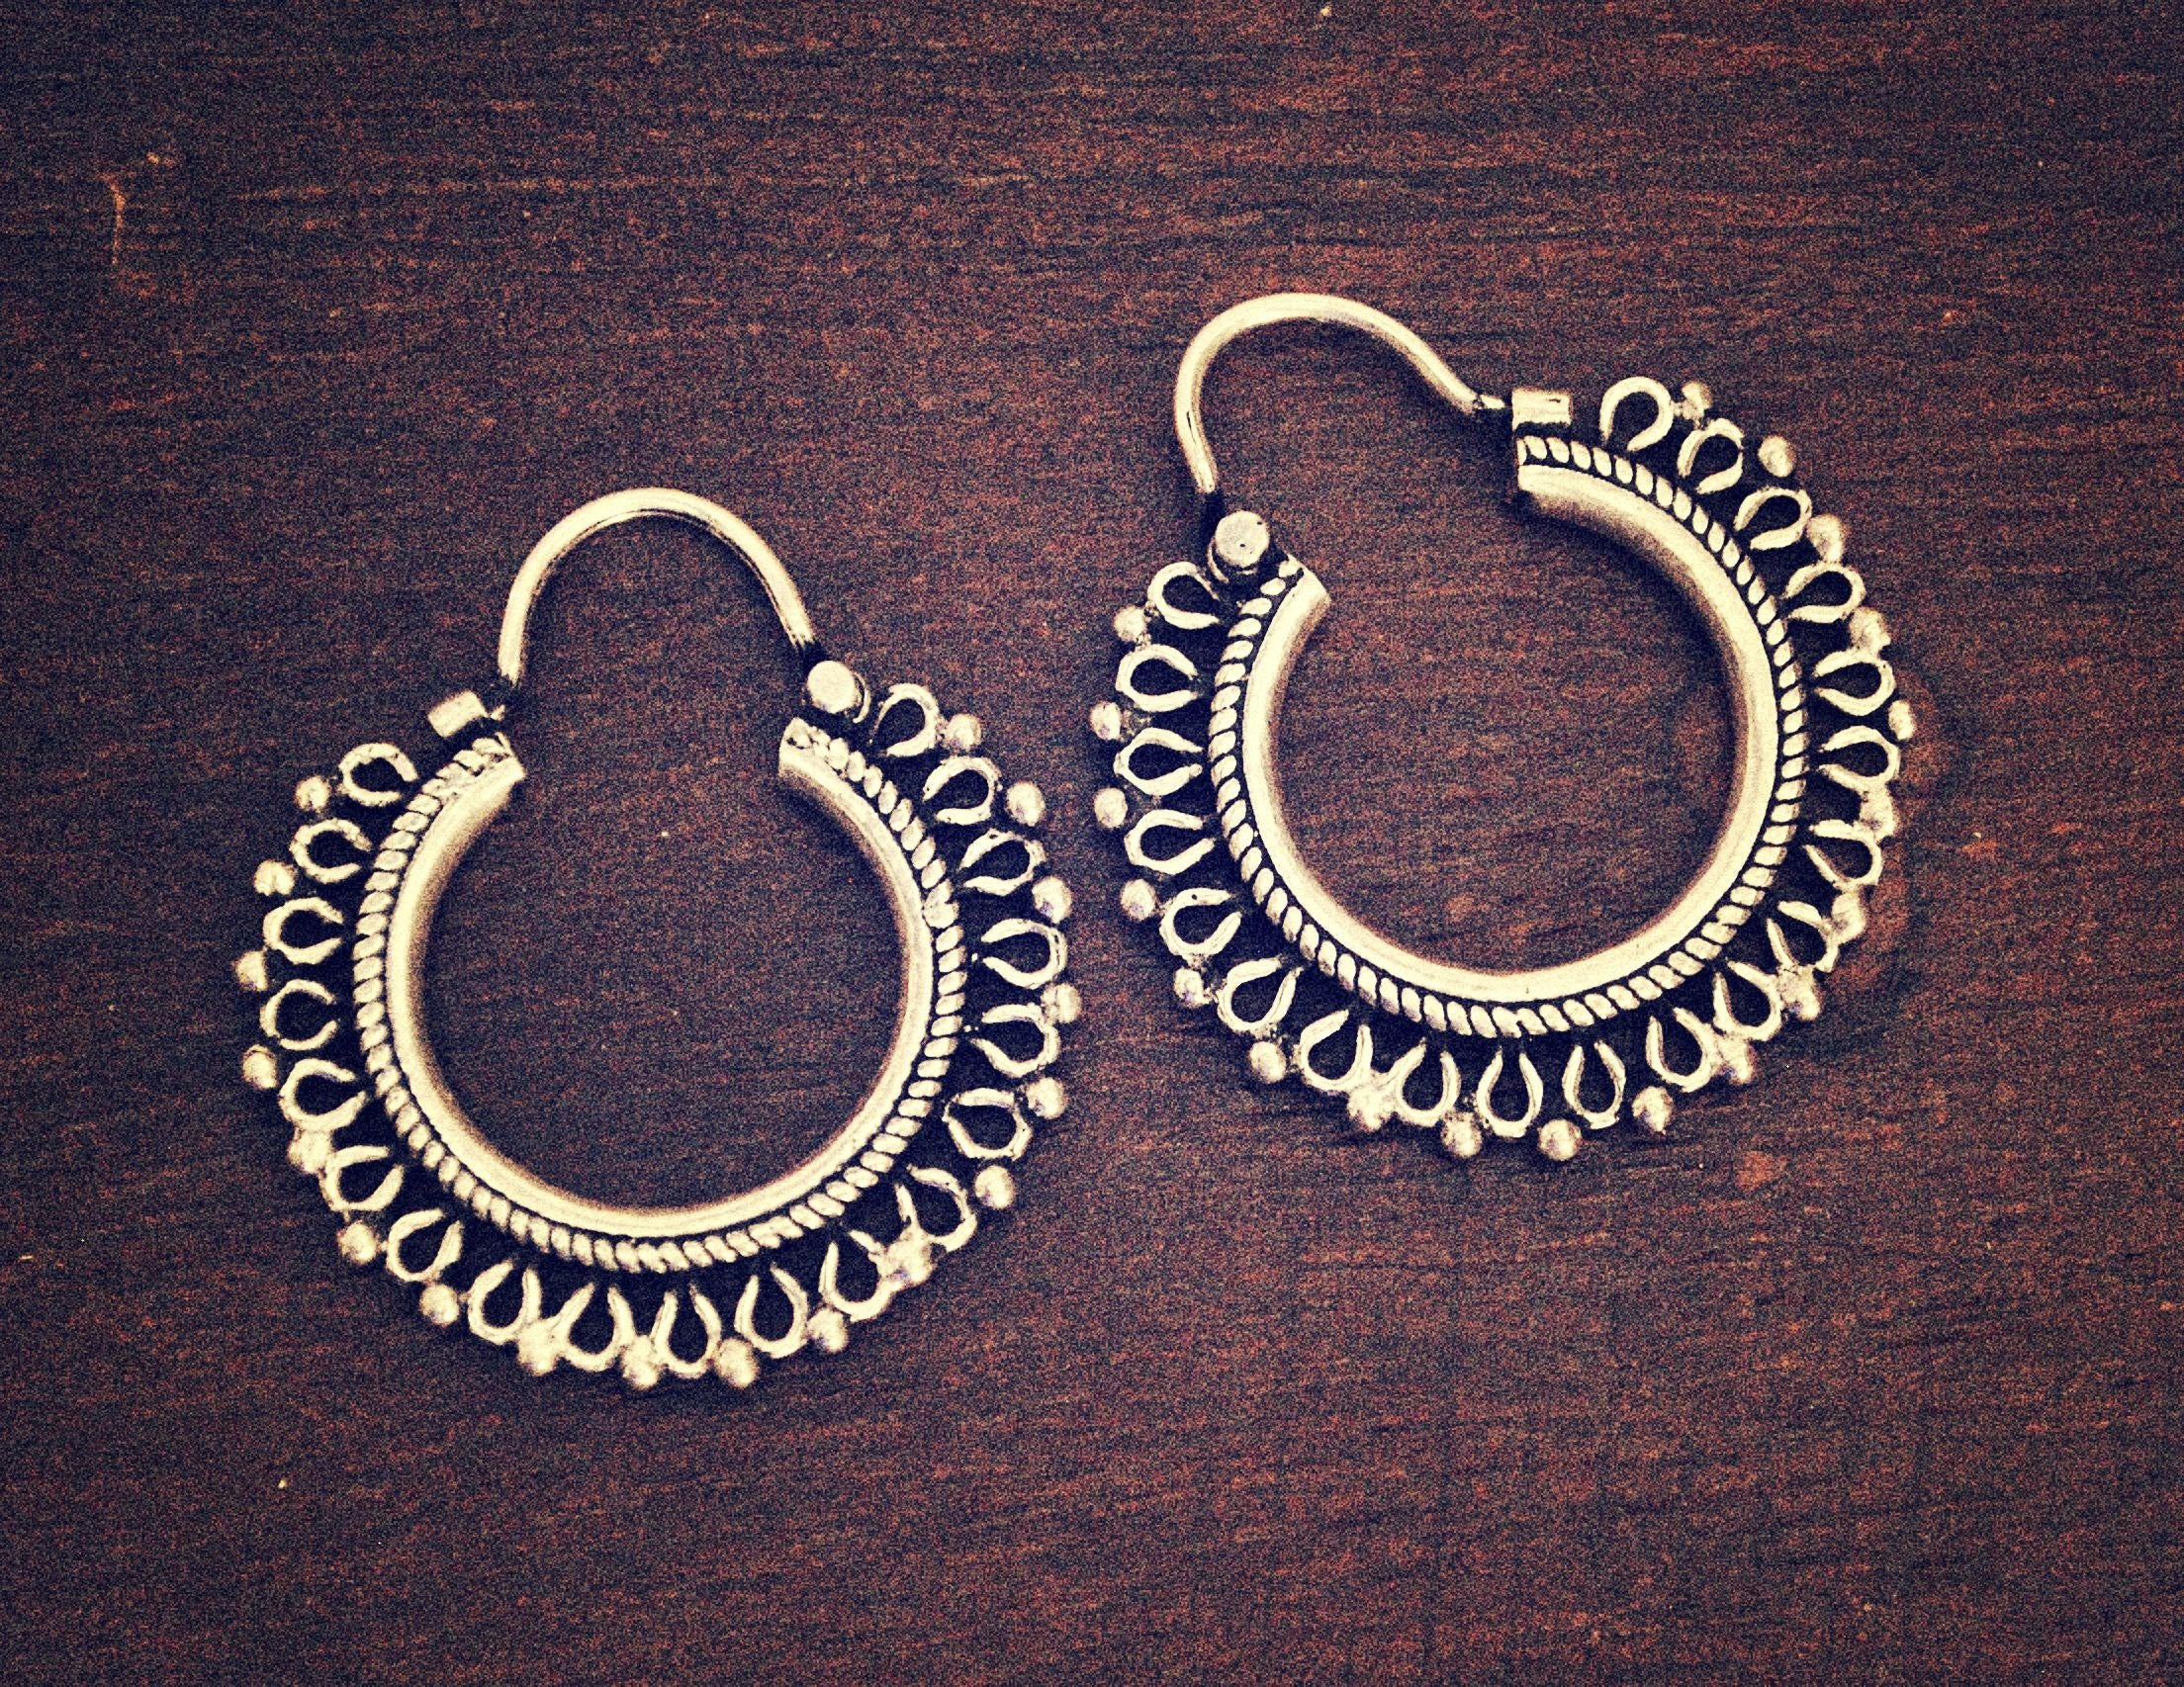 Rajasthani Hoop Earrings - Small - Indian Jewelry - Rajasthan Jewelry - Rajasthan Earrings - Gypsy Jewelry - Gypsy Earrings